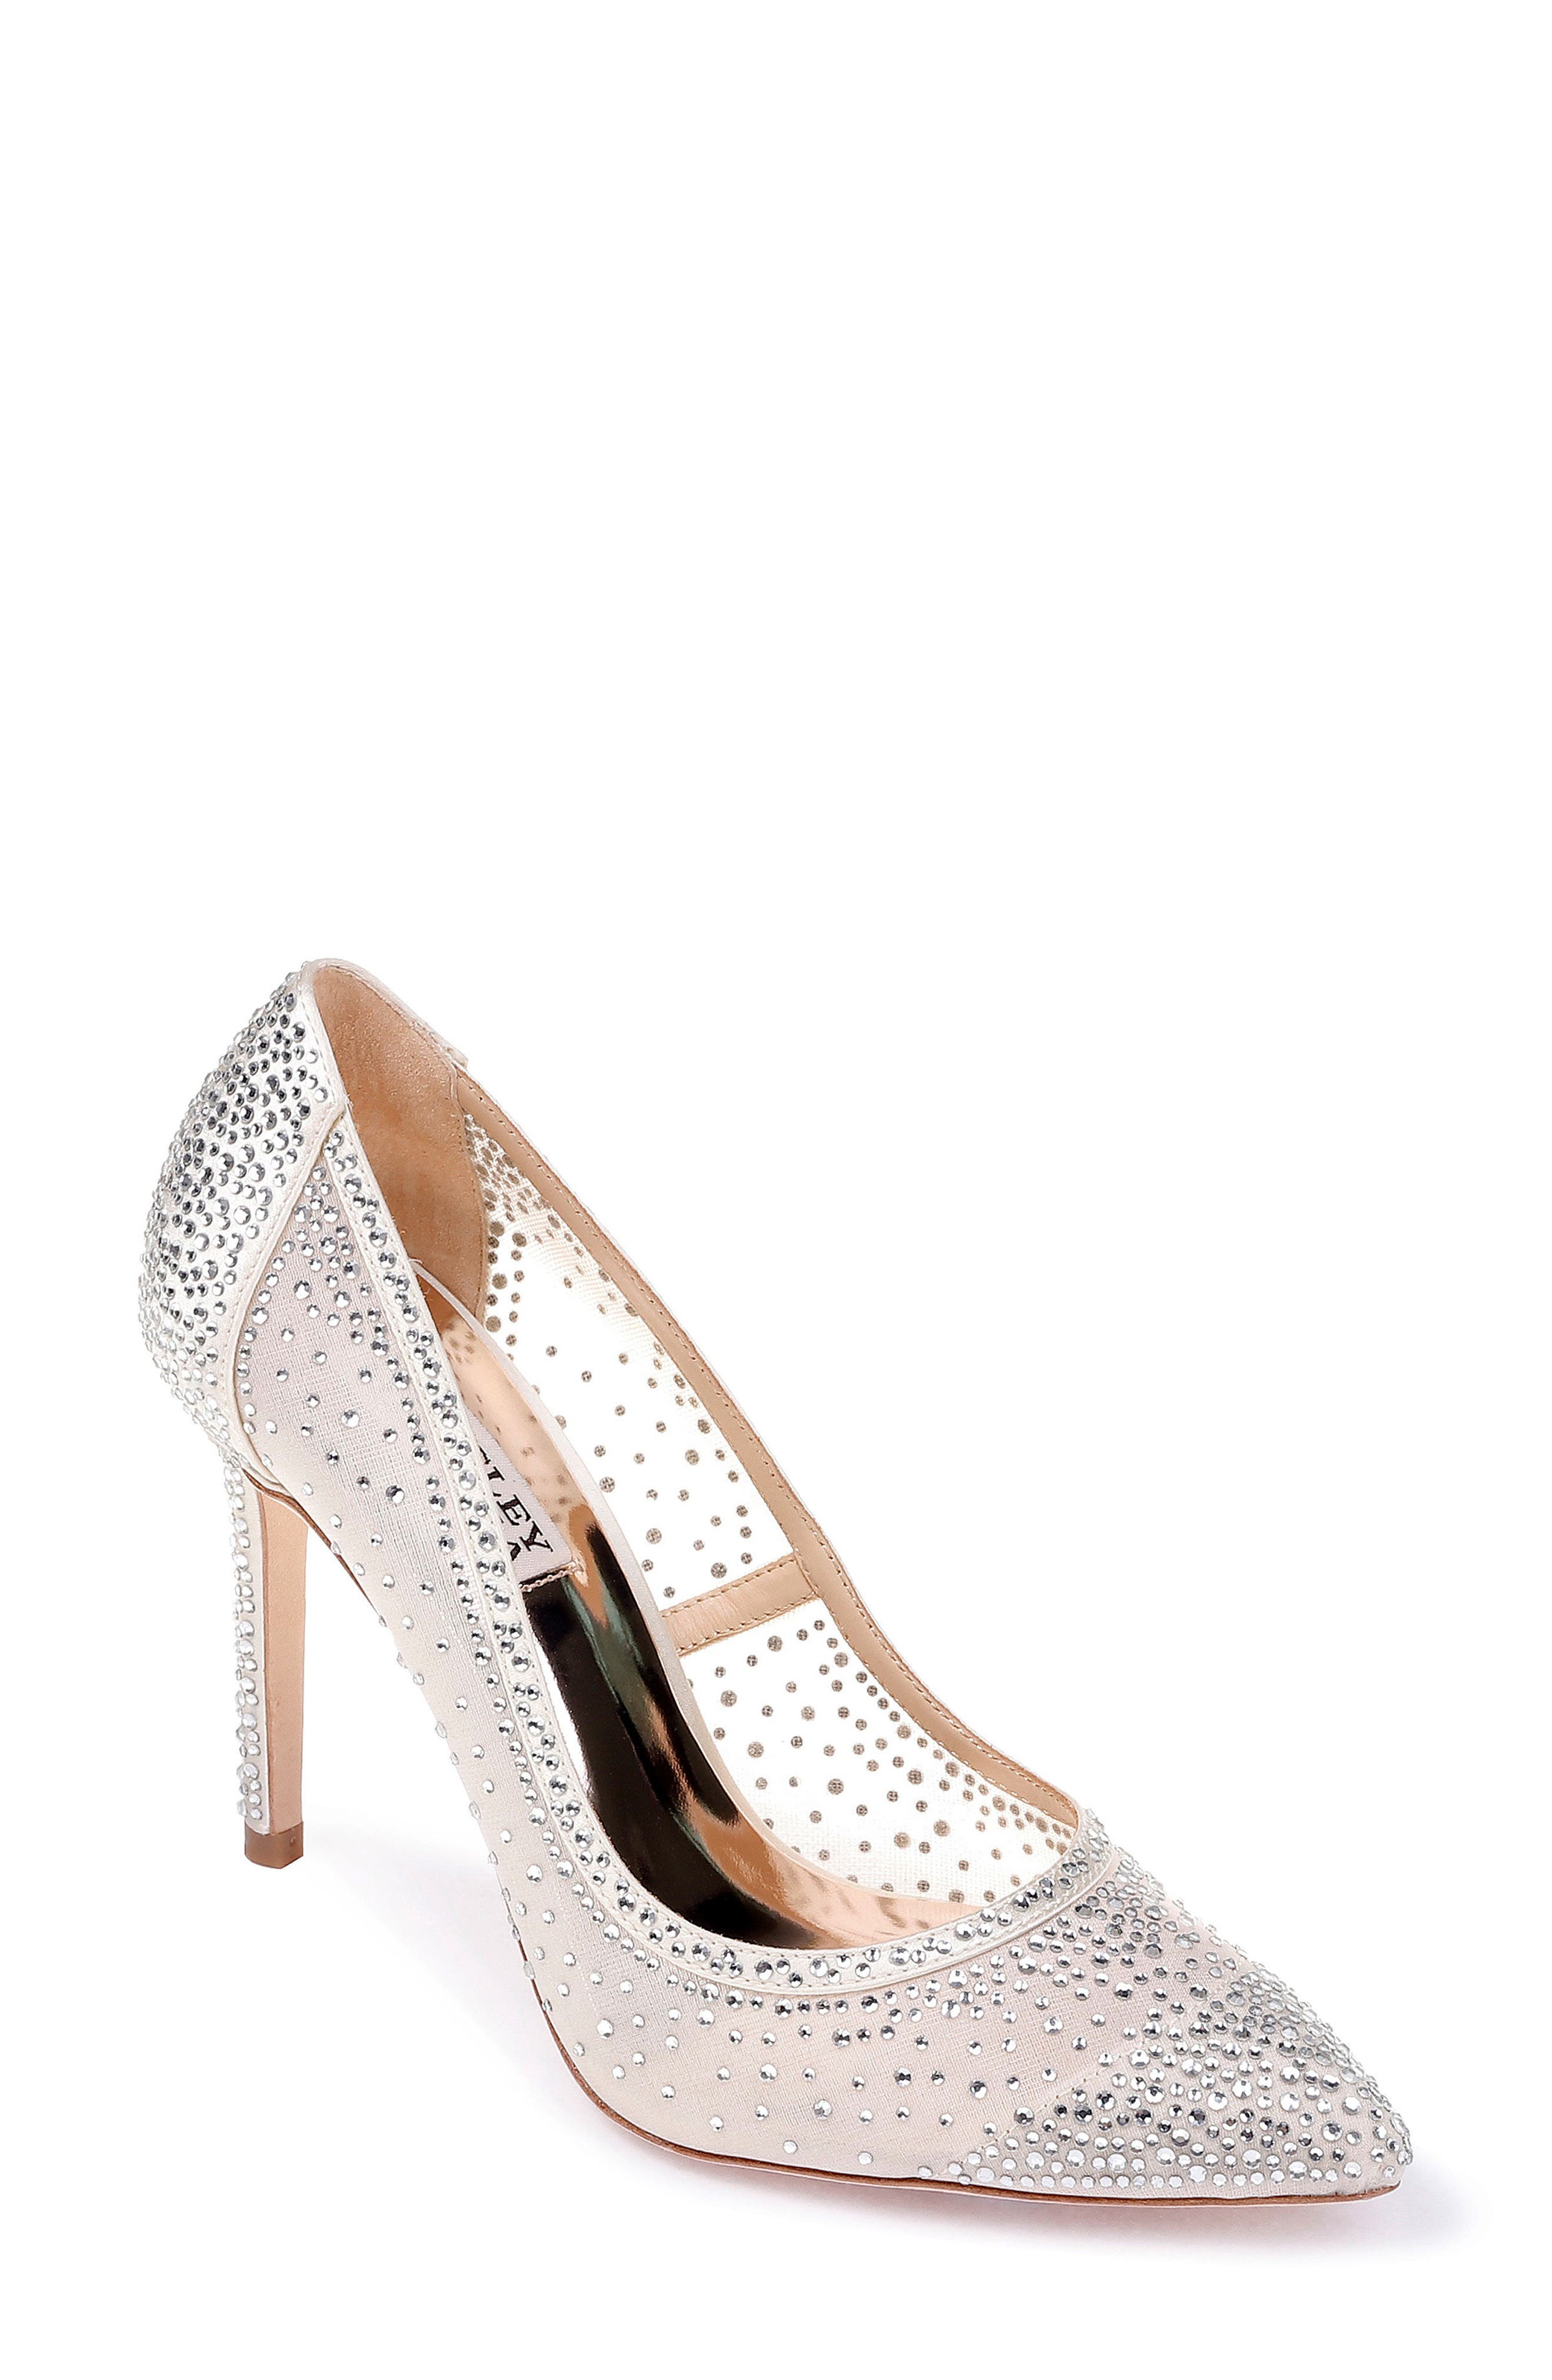 Weslee Pointy Toe Pump,                         Main,                         color, IVORY SATIN